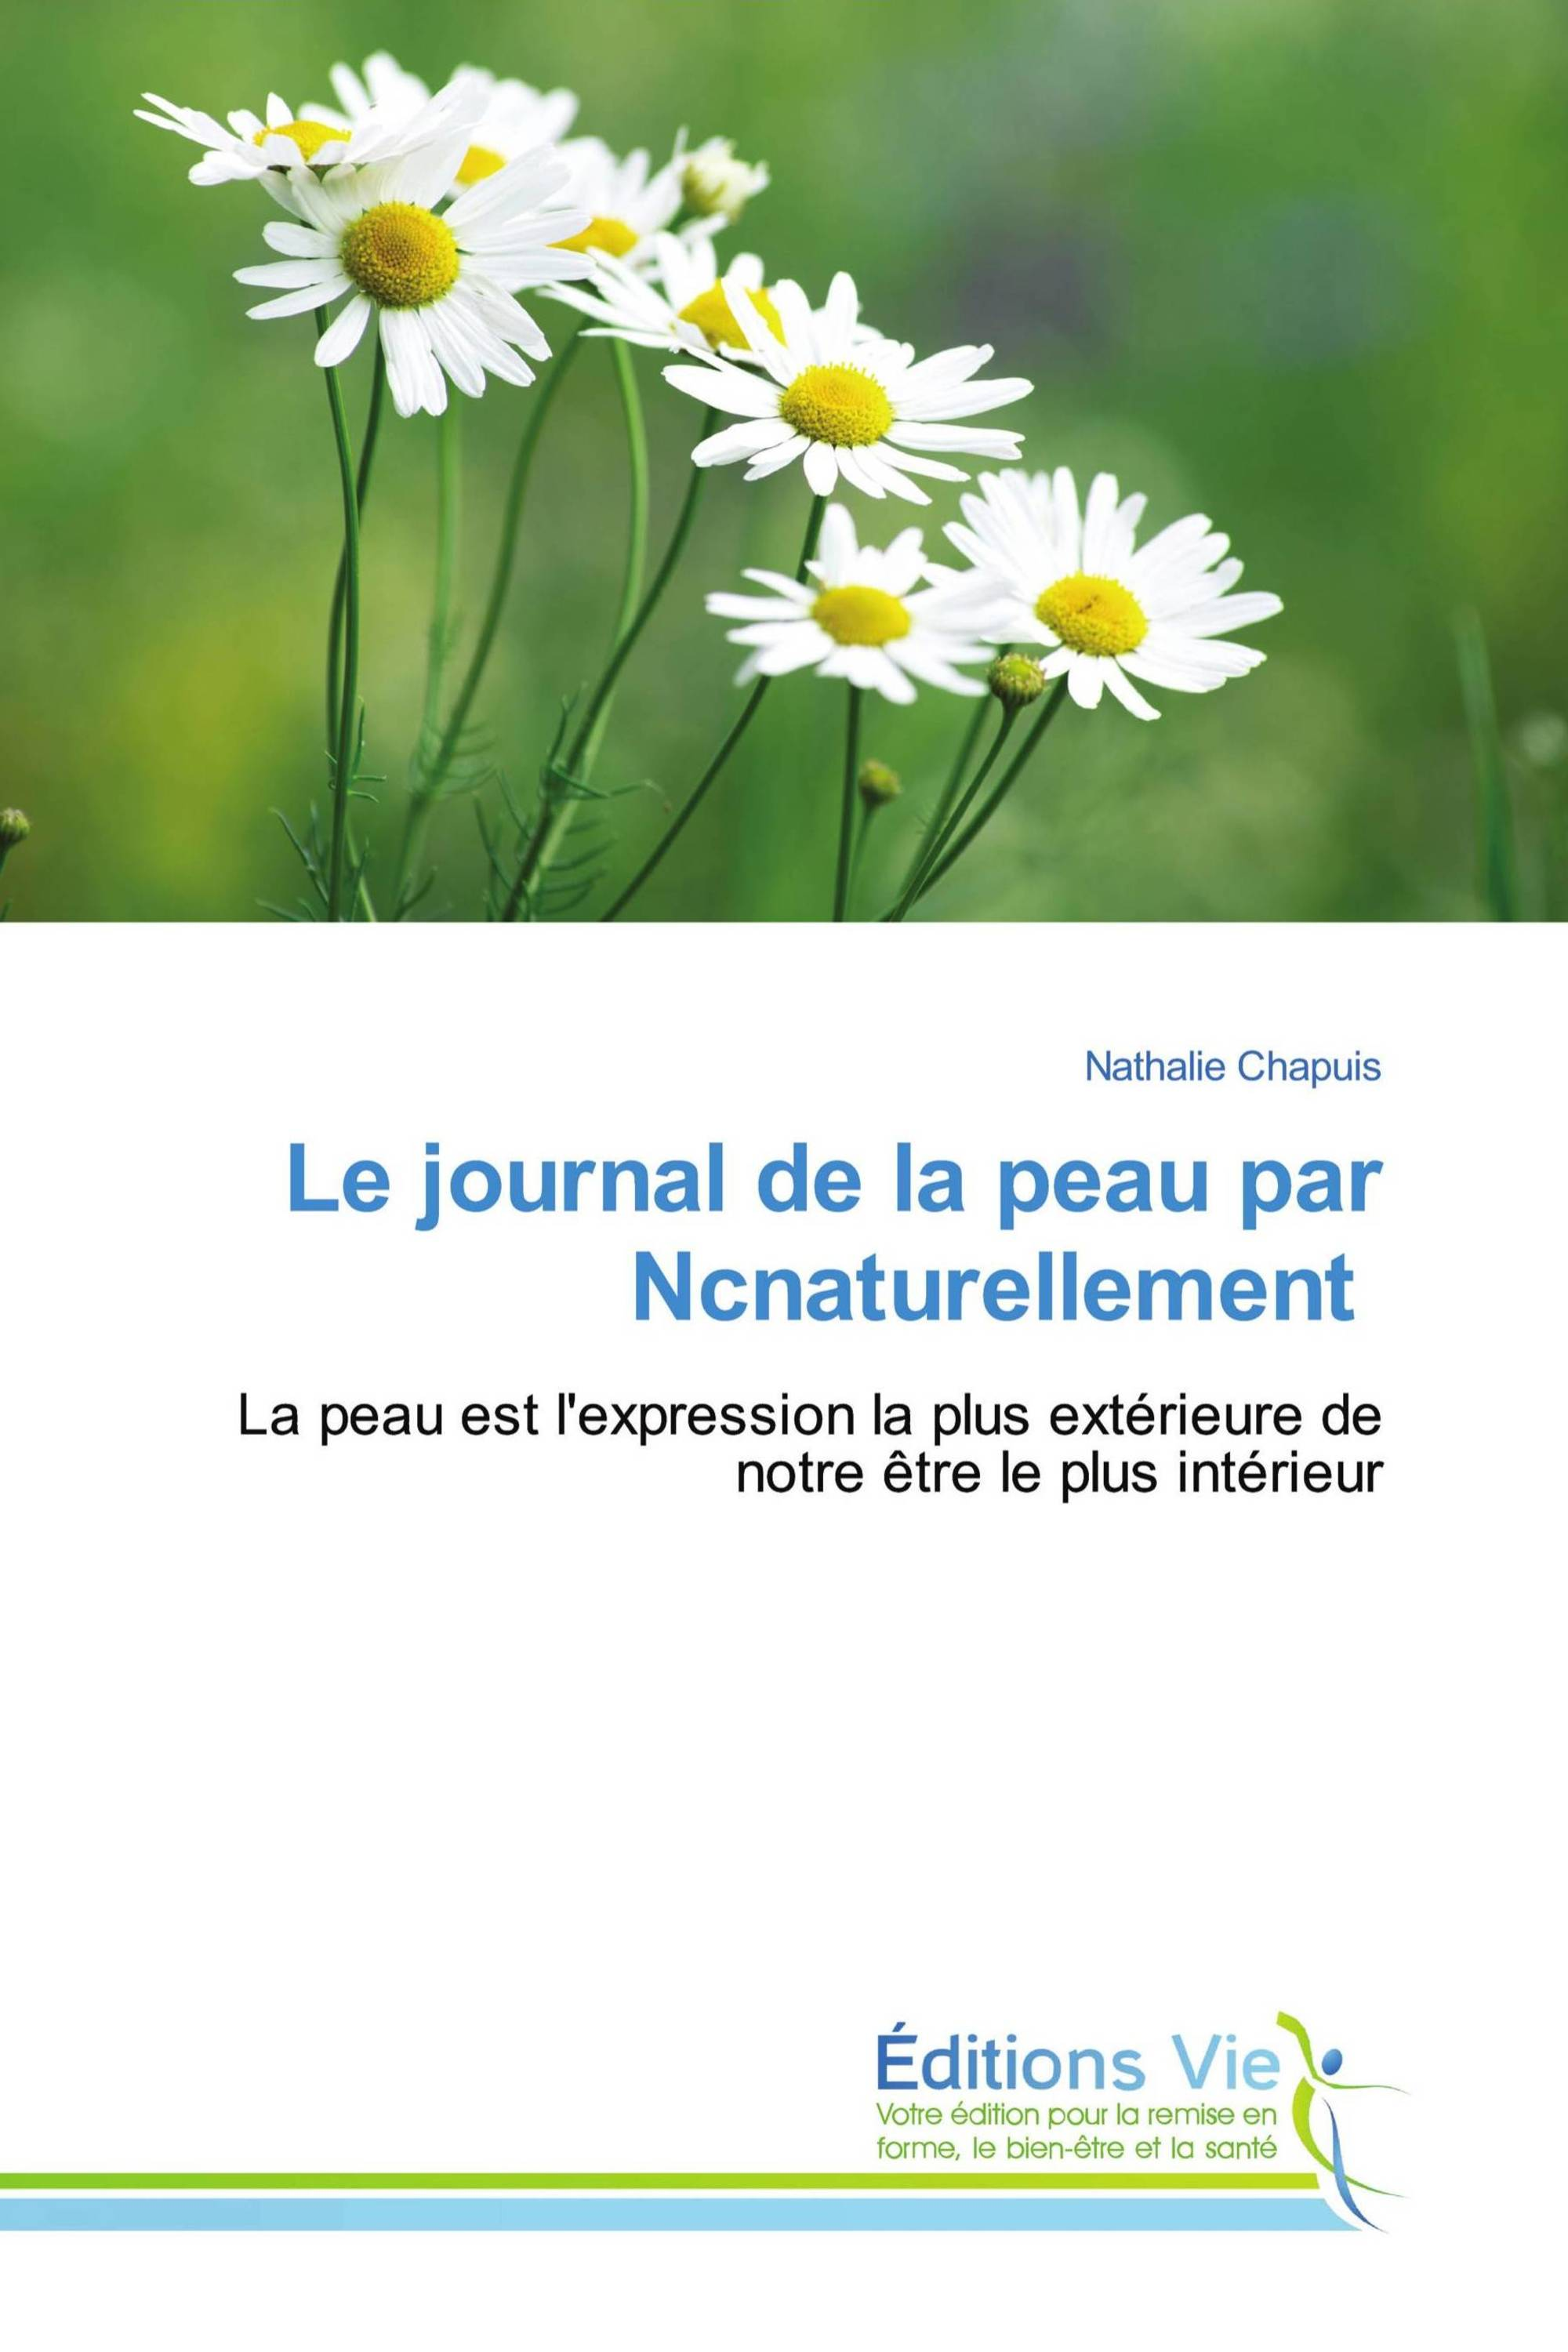 Le journal de la peau par Ncnaturellement